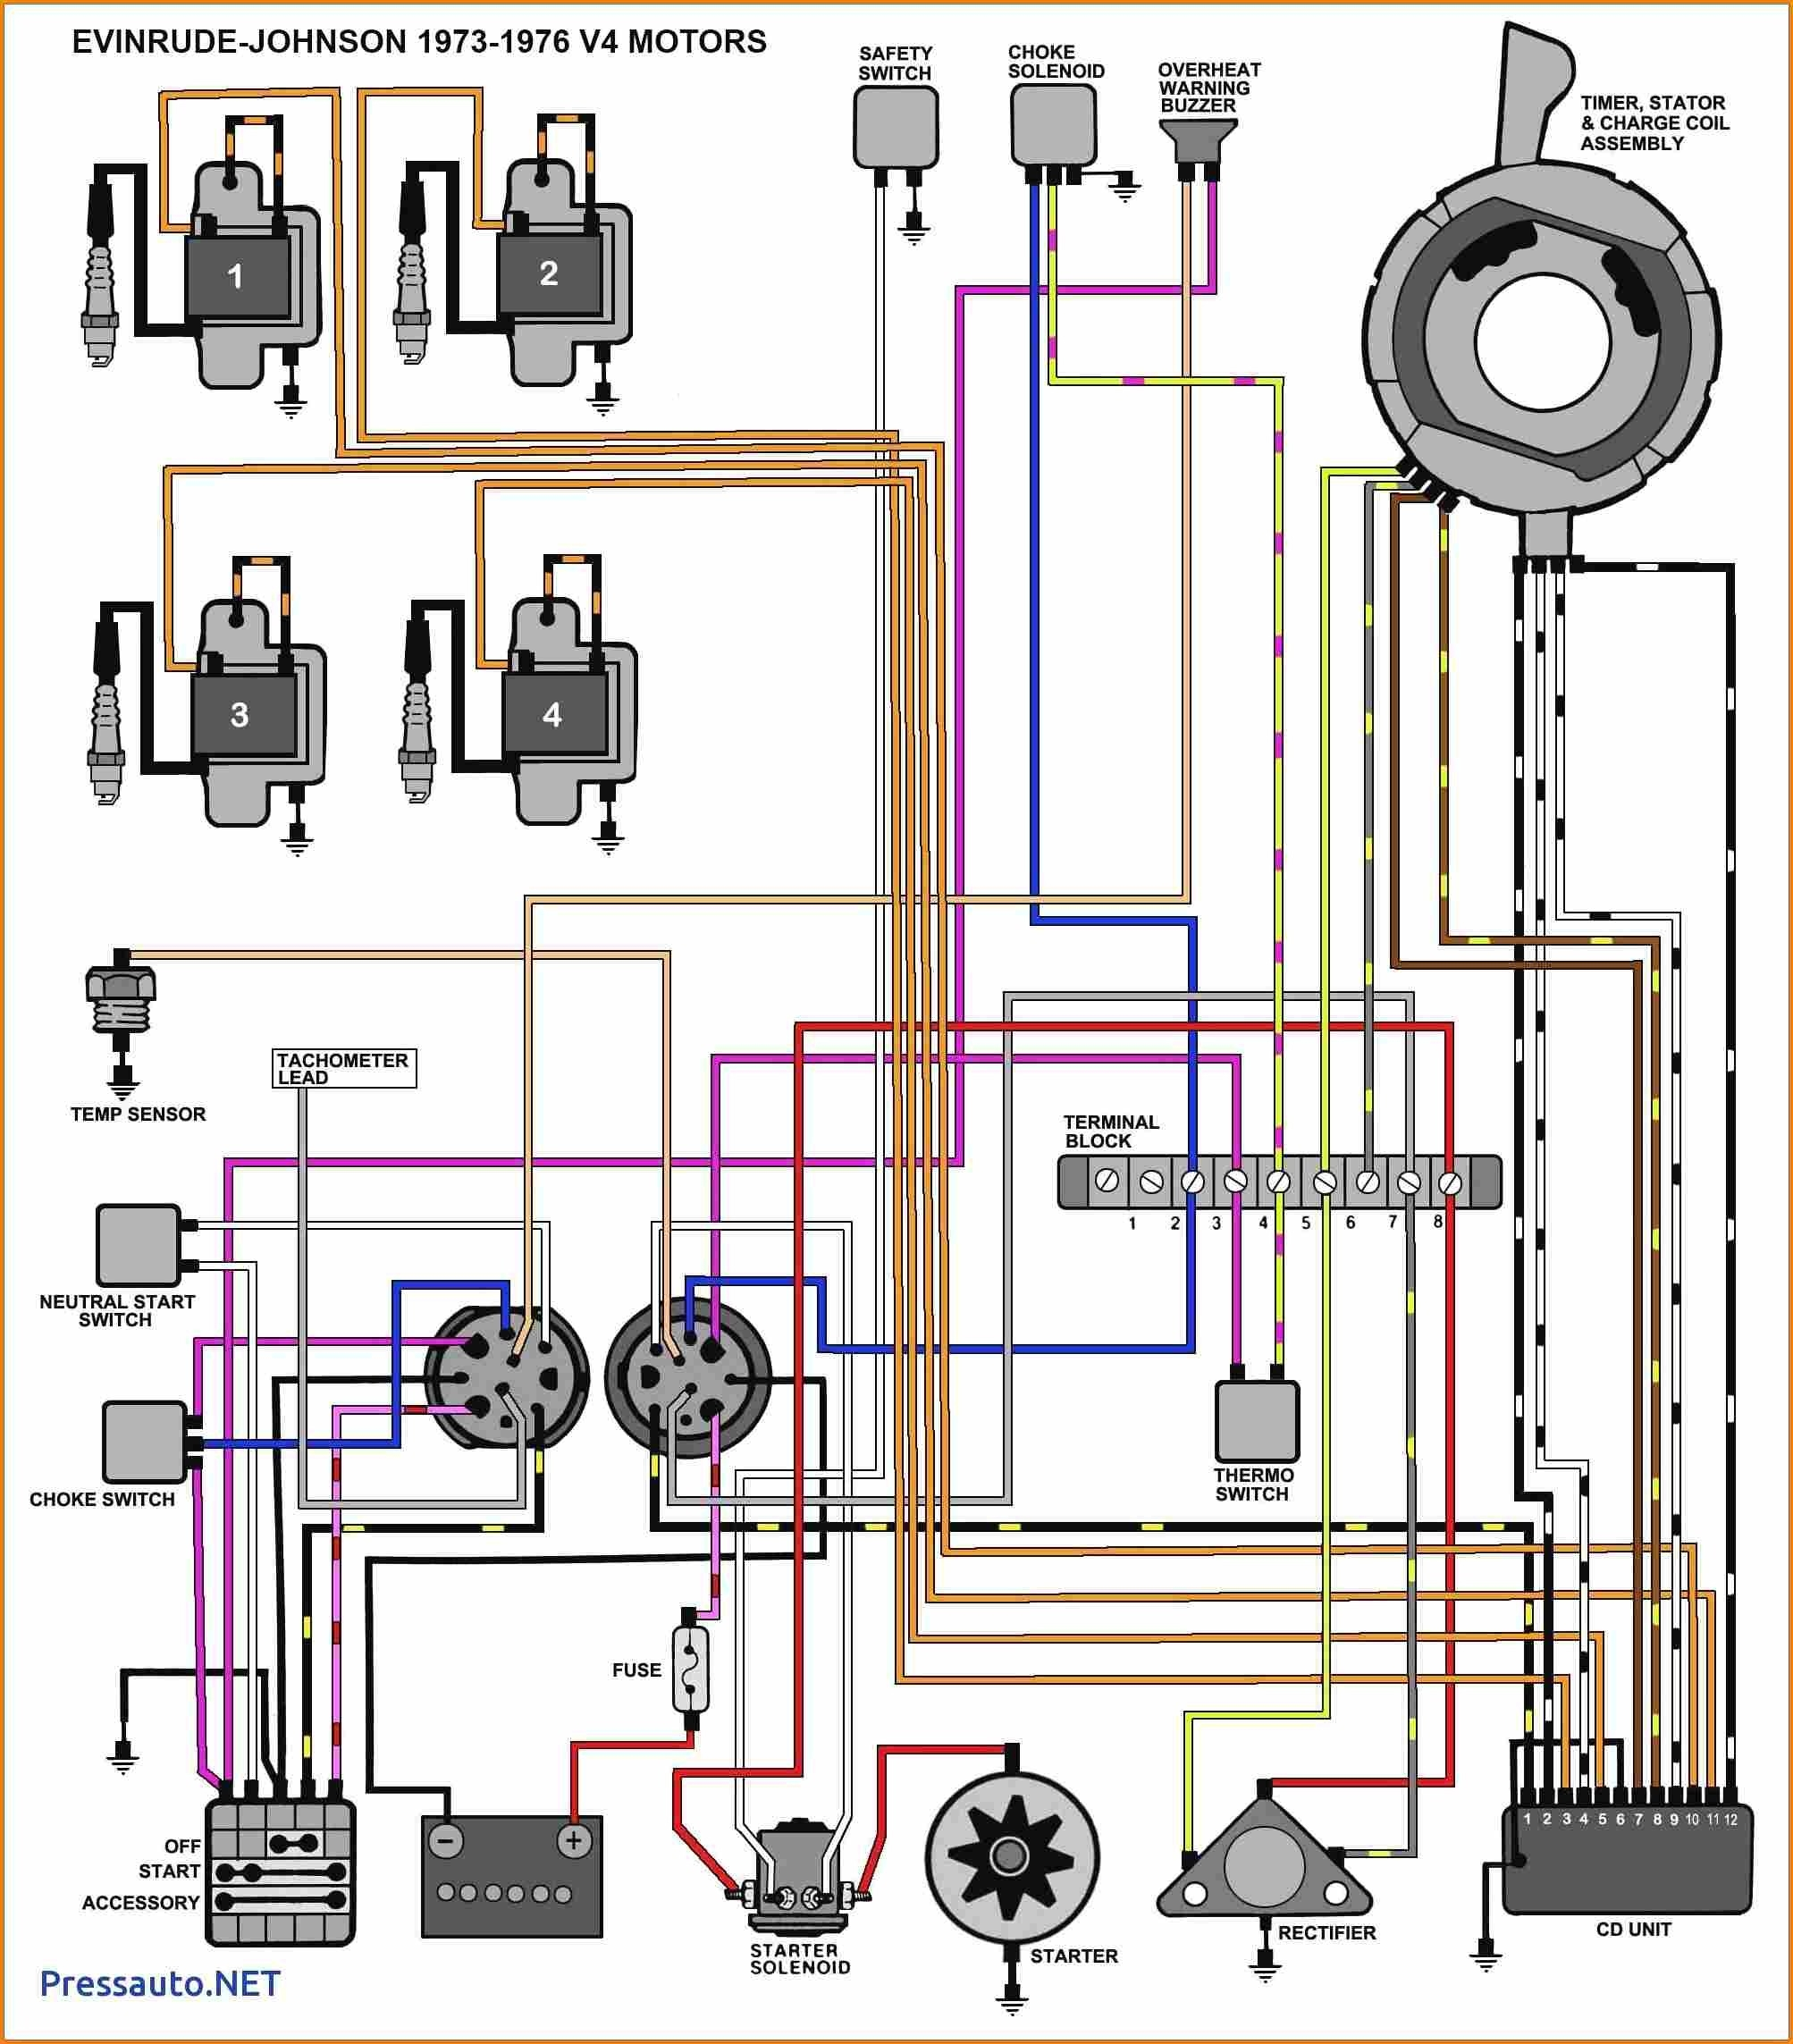 Wiring Schematics For Johnson Outboards | Wiring Diagram on